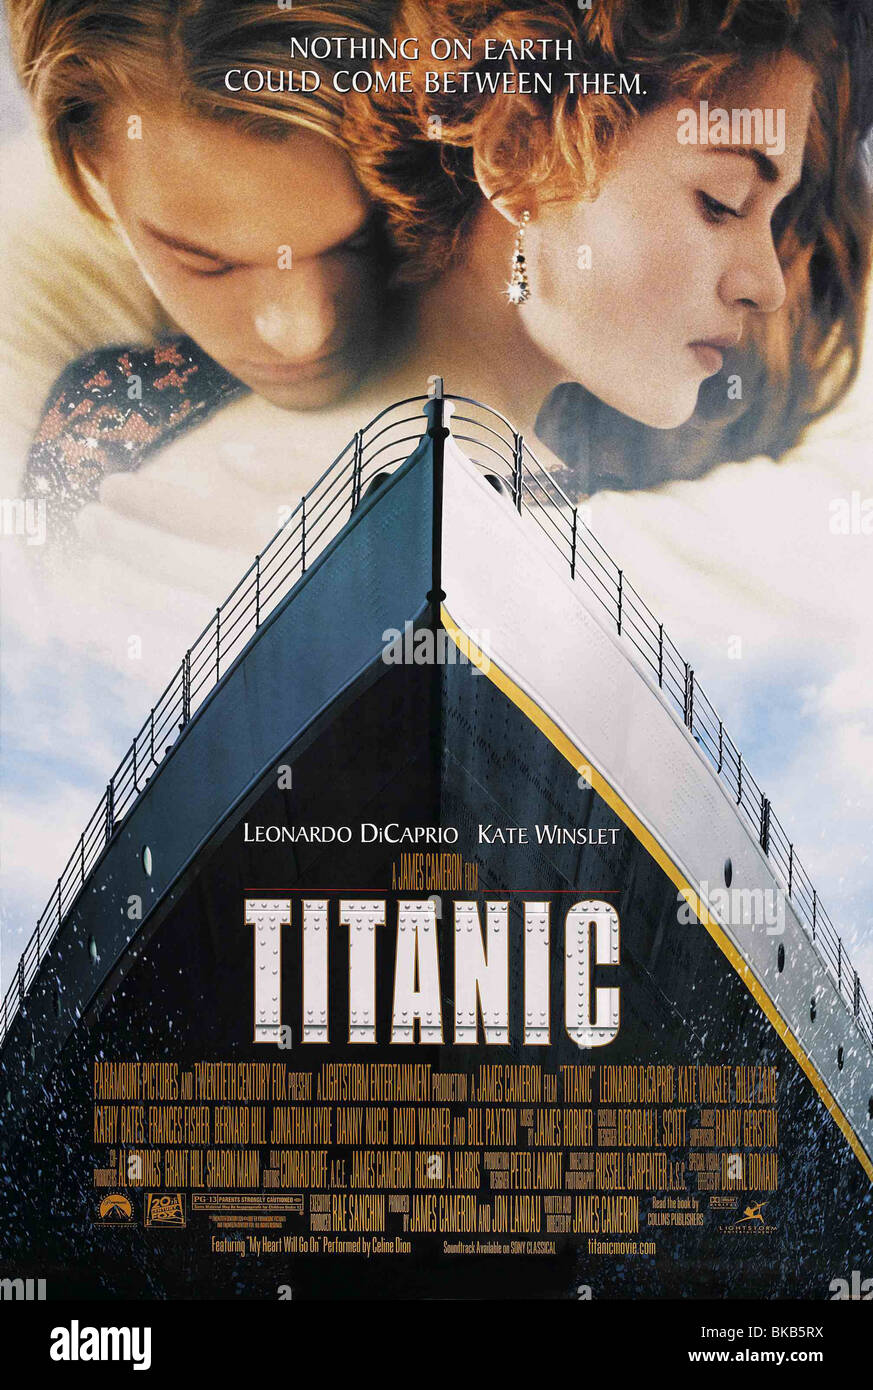 Titanic Jahr: 1997 Regie: James Cameron Kate Winslet, Leonardo DiCaprio Movie Poster (USA) Stockbild